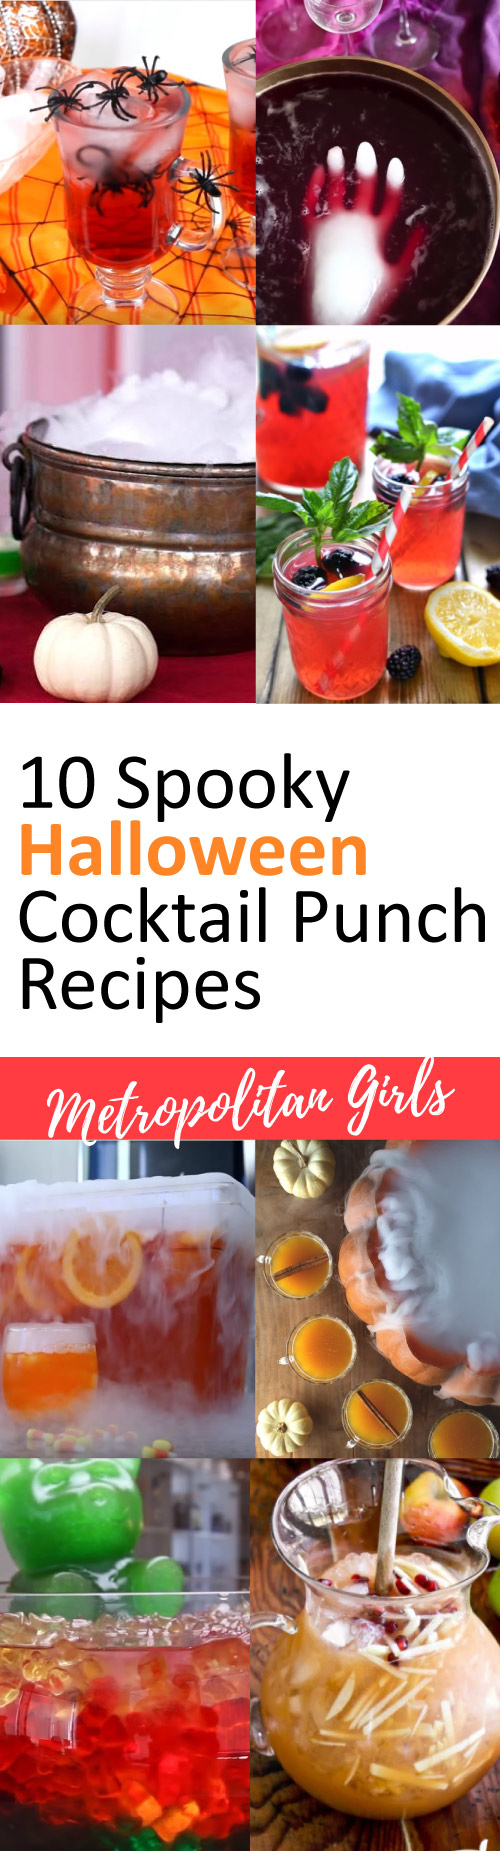 Spooky Halloween cocktail punch recipes for a crowd. Delicious party drinks.